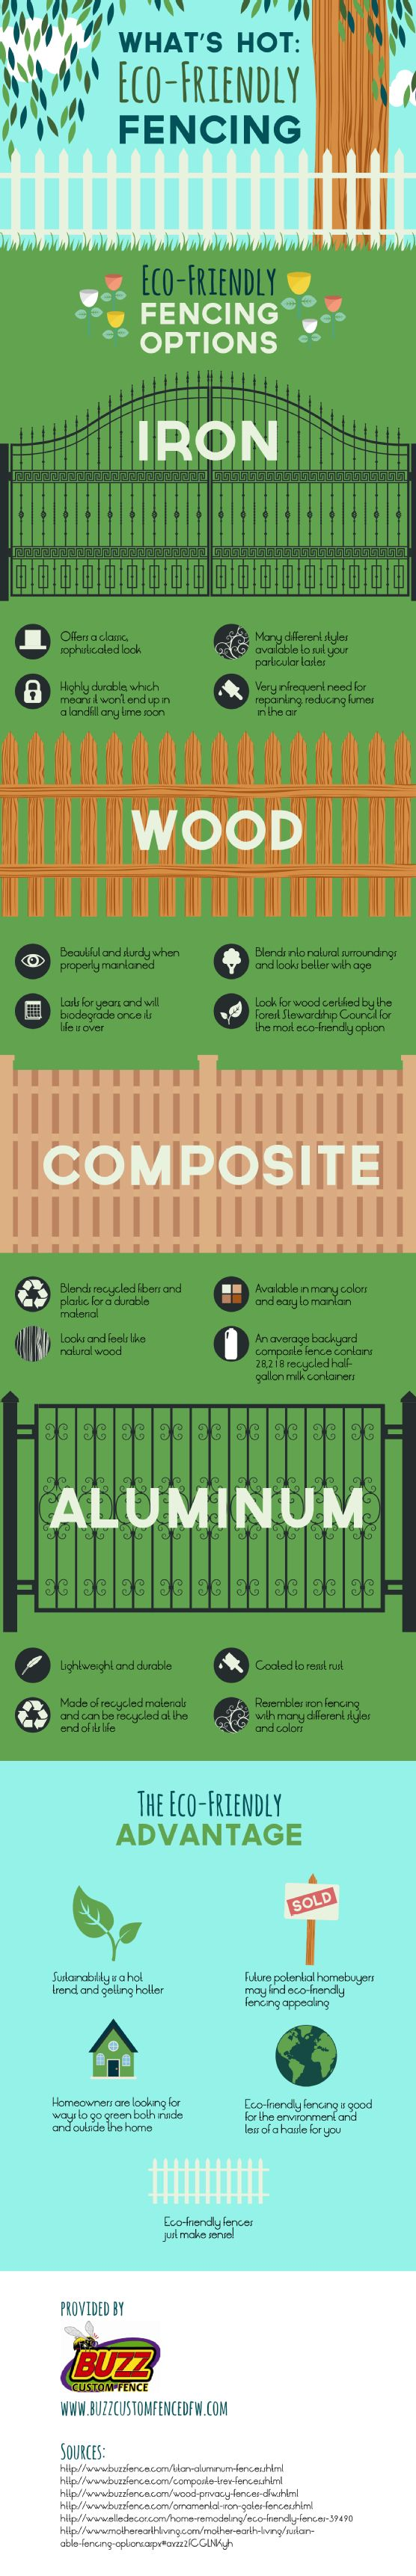 What's Hot: Eco-Friendly Fencing [INFOGRAPHIC] #fencing